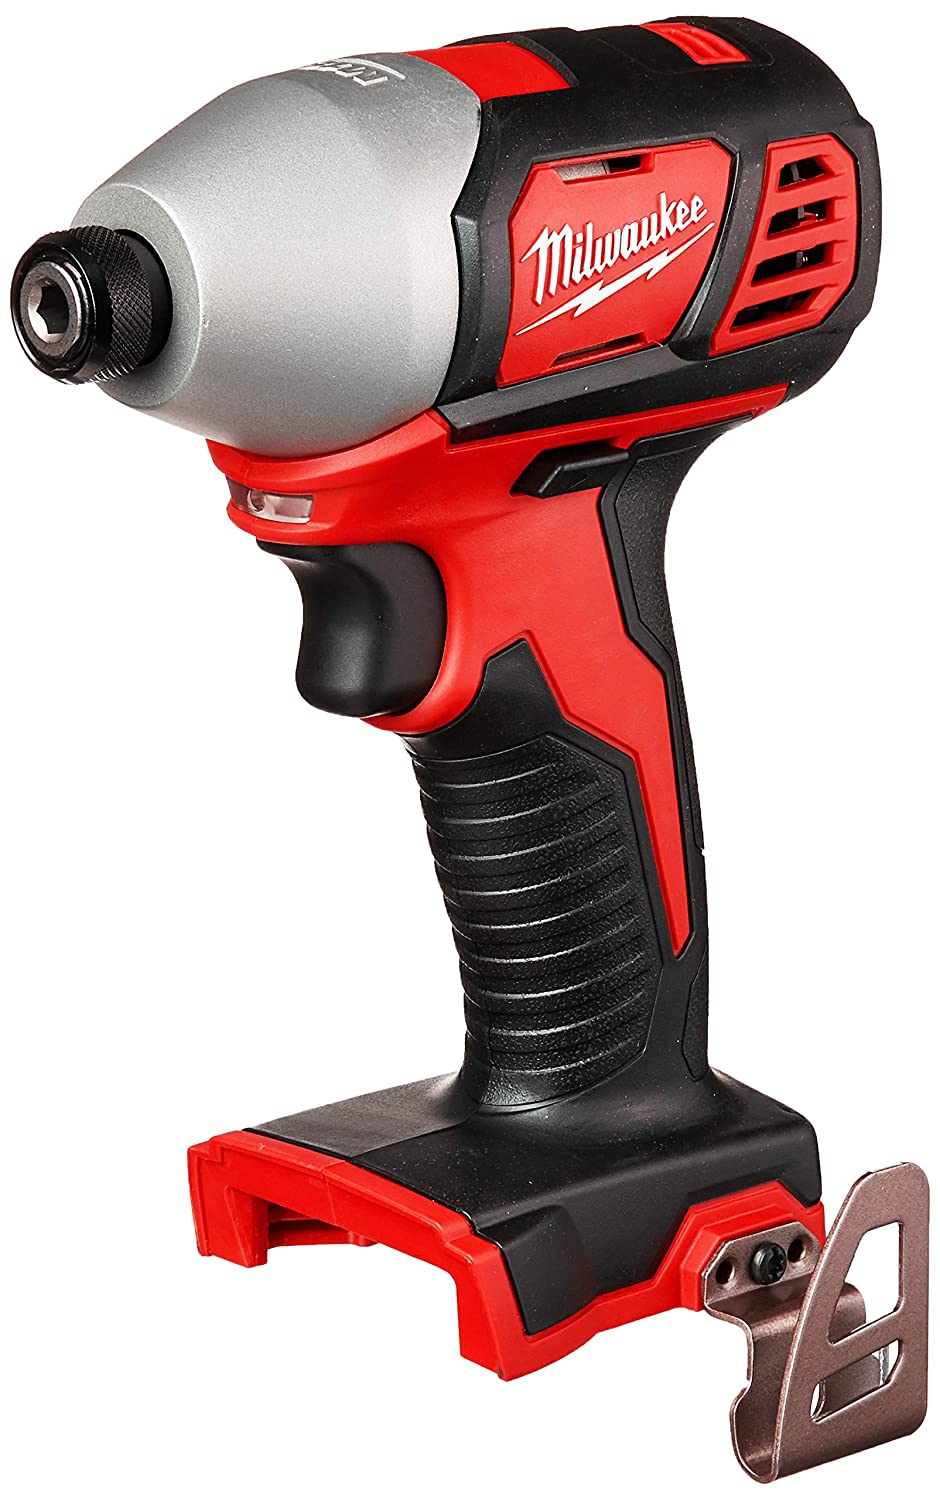 Milwaukee 2656-20 M18 18V 1 4 Inch Lithium Ion Hex Impact Driver with 1,500 Inch Pounds of Torque and LED Lighting Array Battery Not Included, Power Tool Only